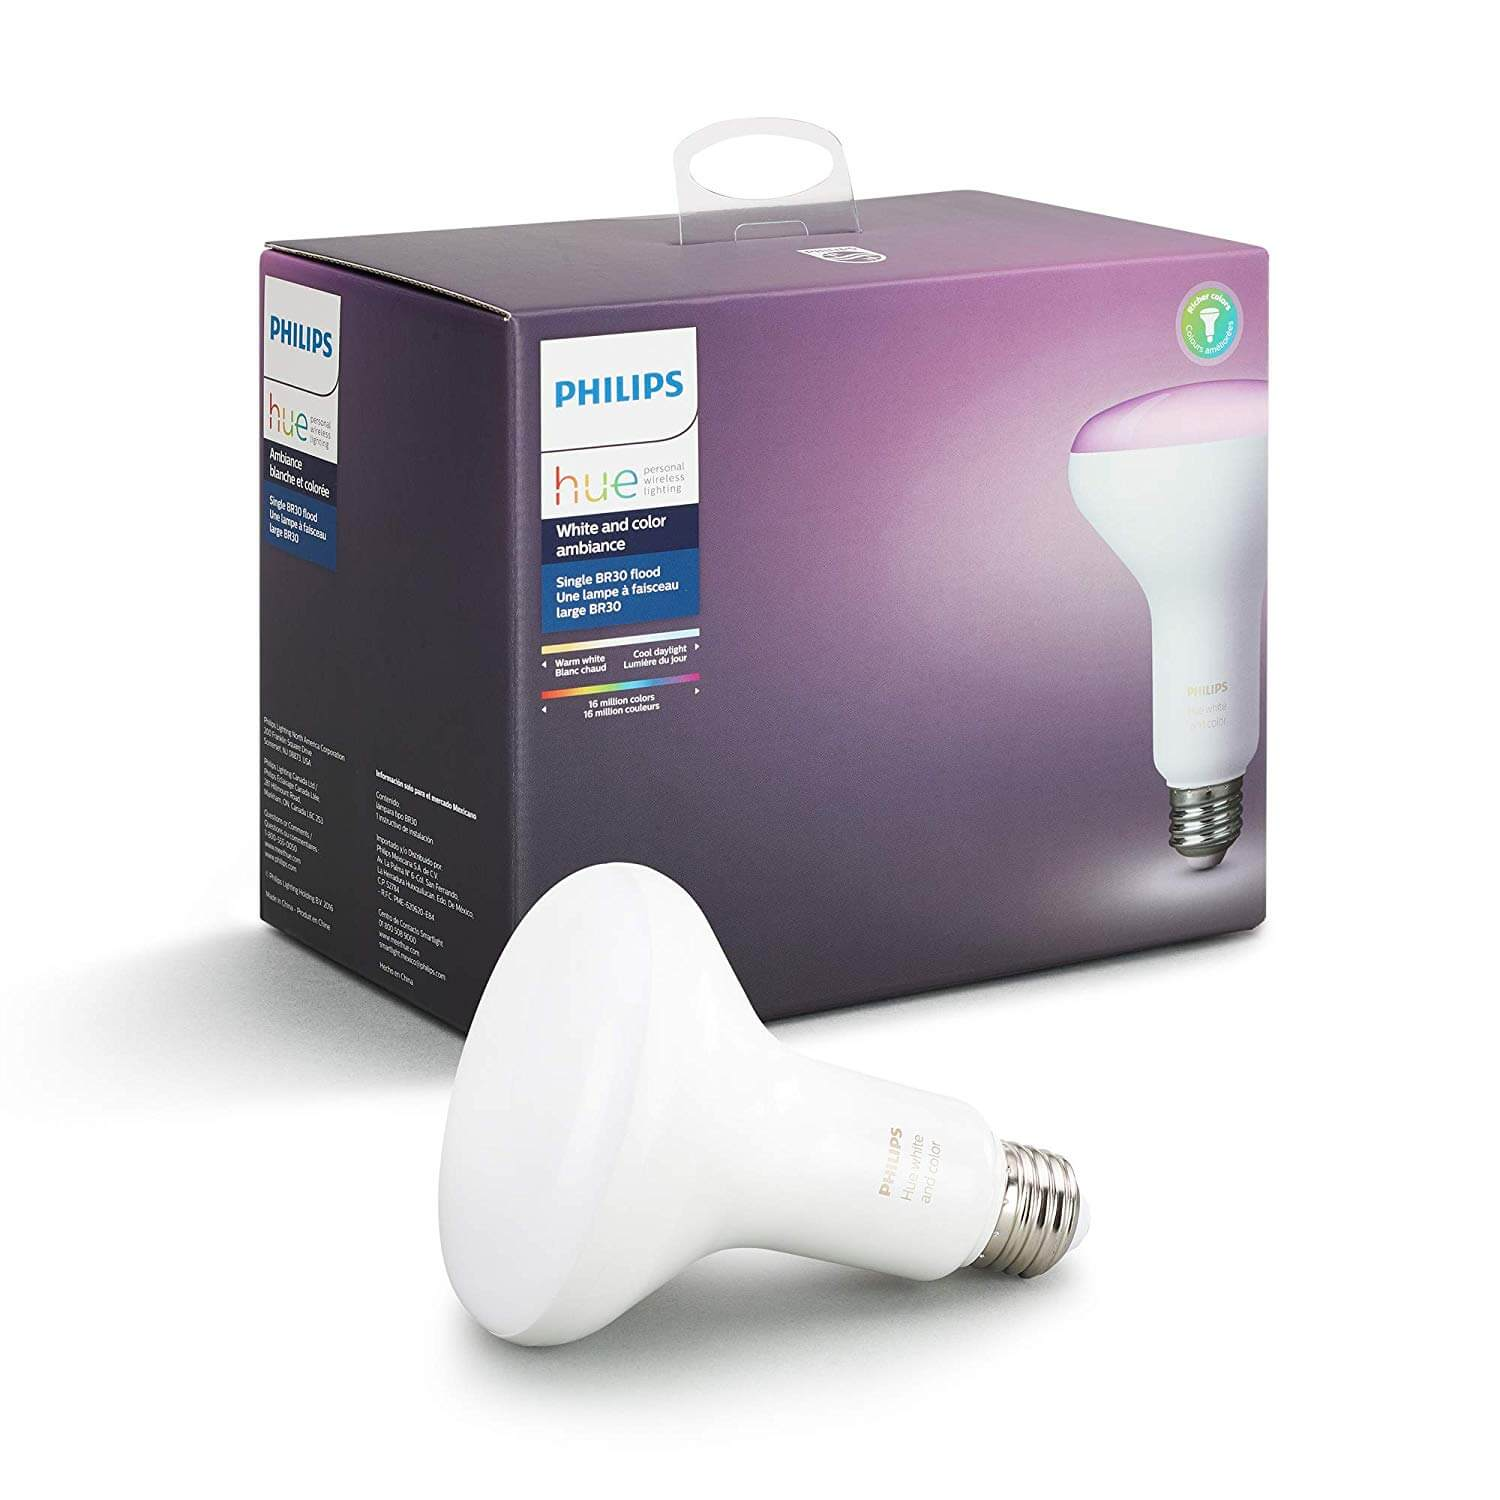 Hue Fitting Completed Philips Hue Product Model List Us Home Automation Tech